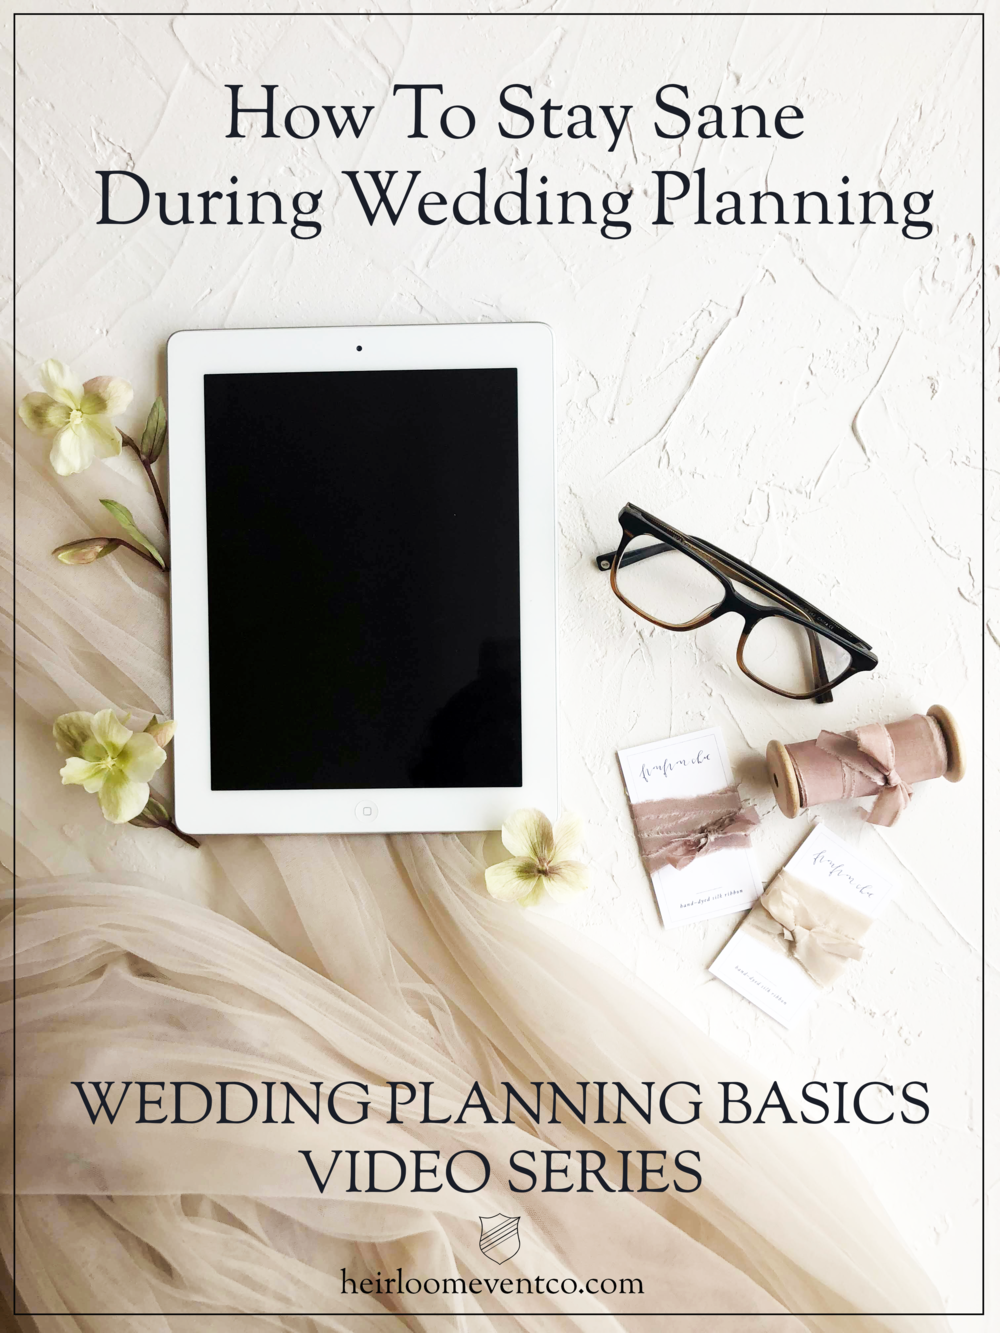 Heirloom Event Co. Wedding Planning Basics Series // How To Stay Sane During Wedding Planning